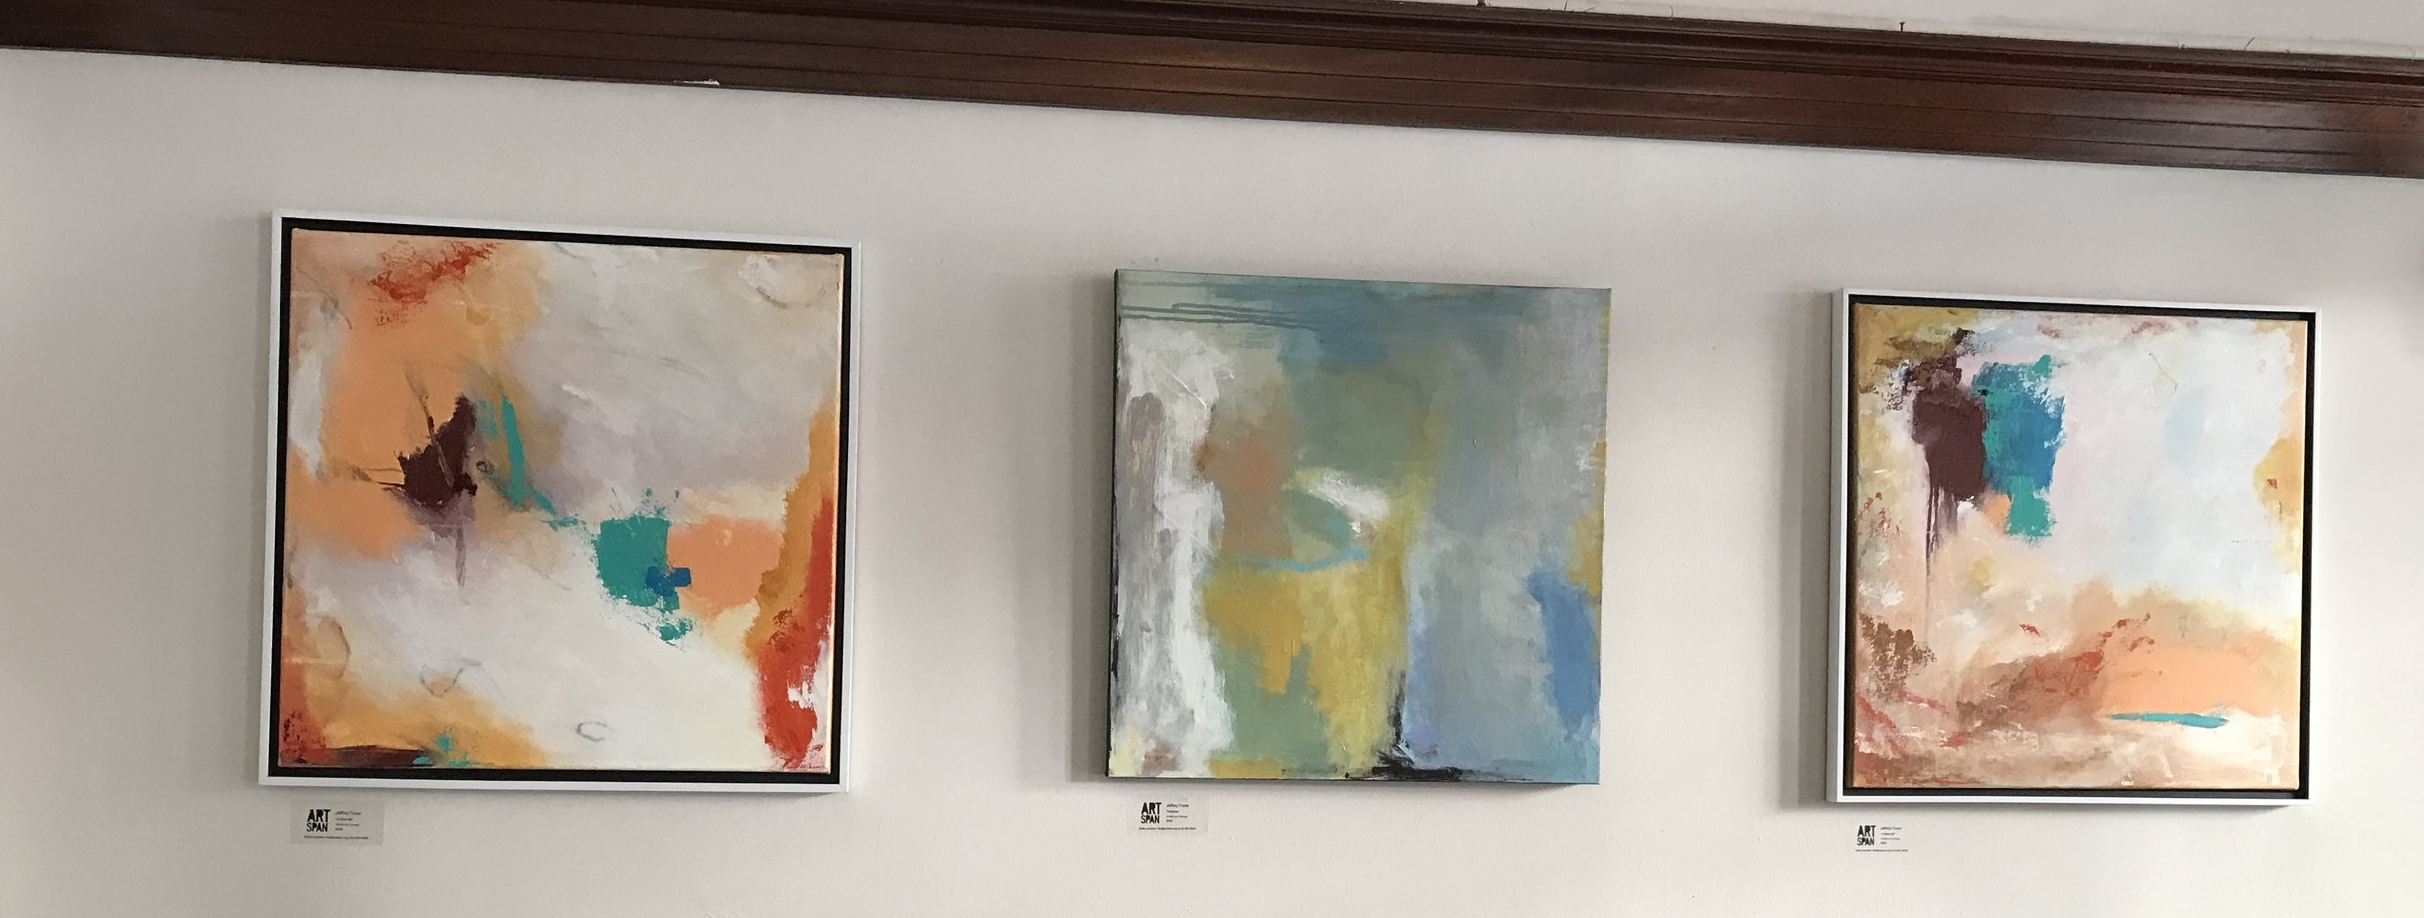 Group Show at Mosser Hotel (2017)